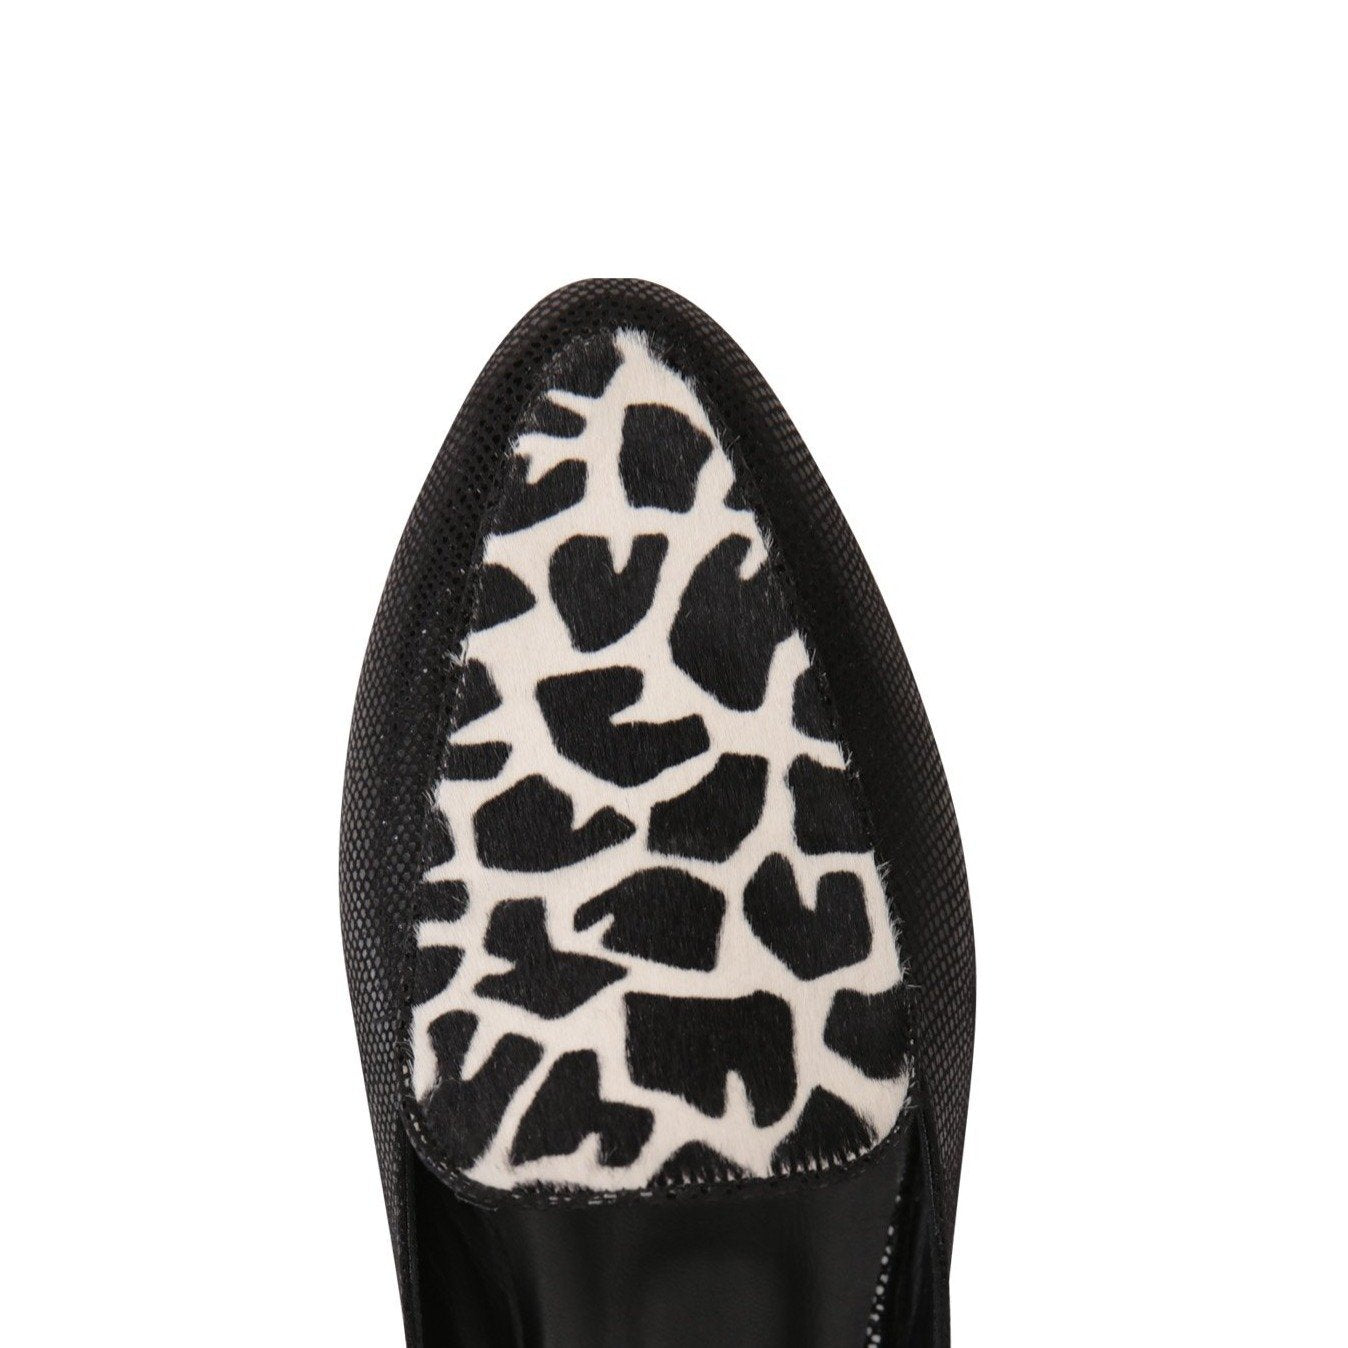 ISEO - Karung Nero + Calf Hair Ruanda, VIAJIYU - Women's Hand Made Sustainable Luxury Shoes. Made in Italy. Made to Order.